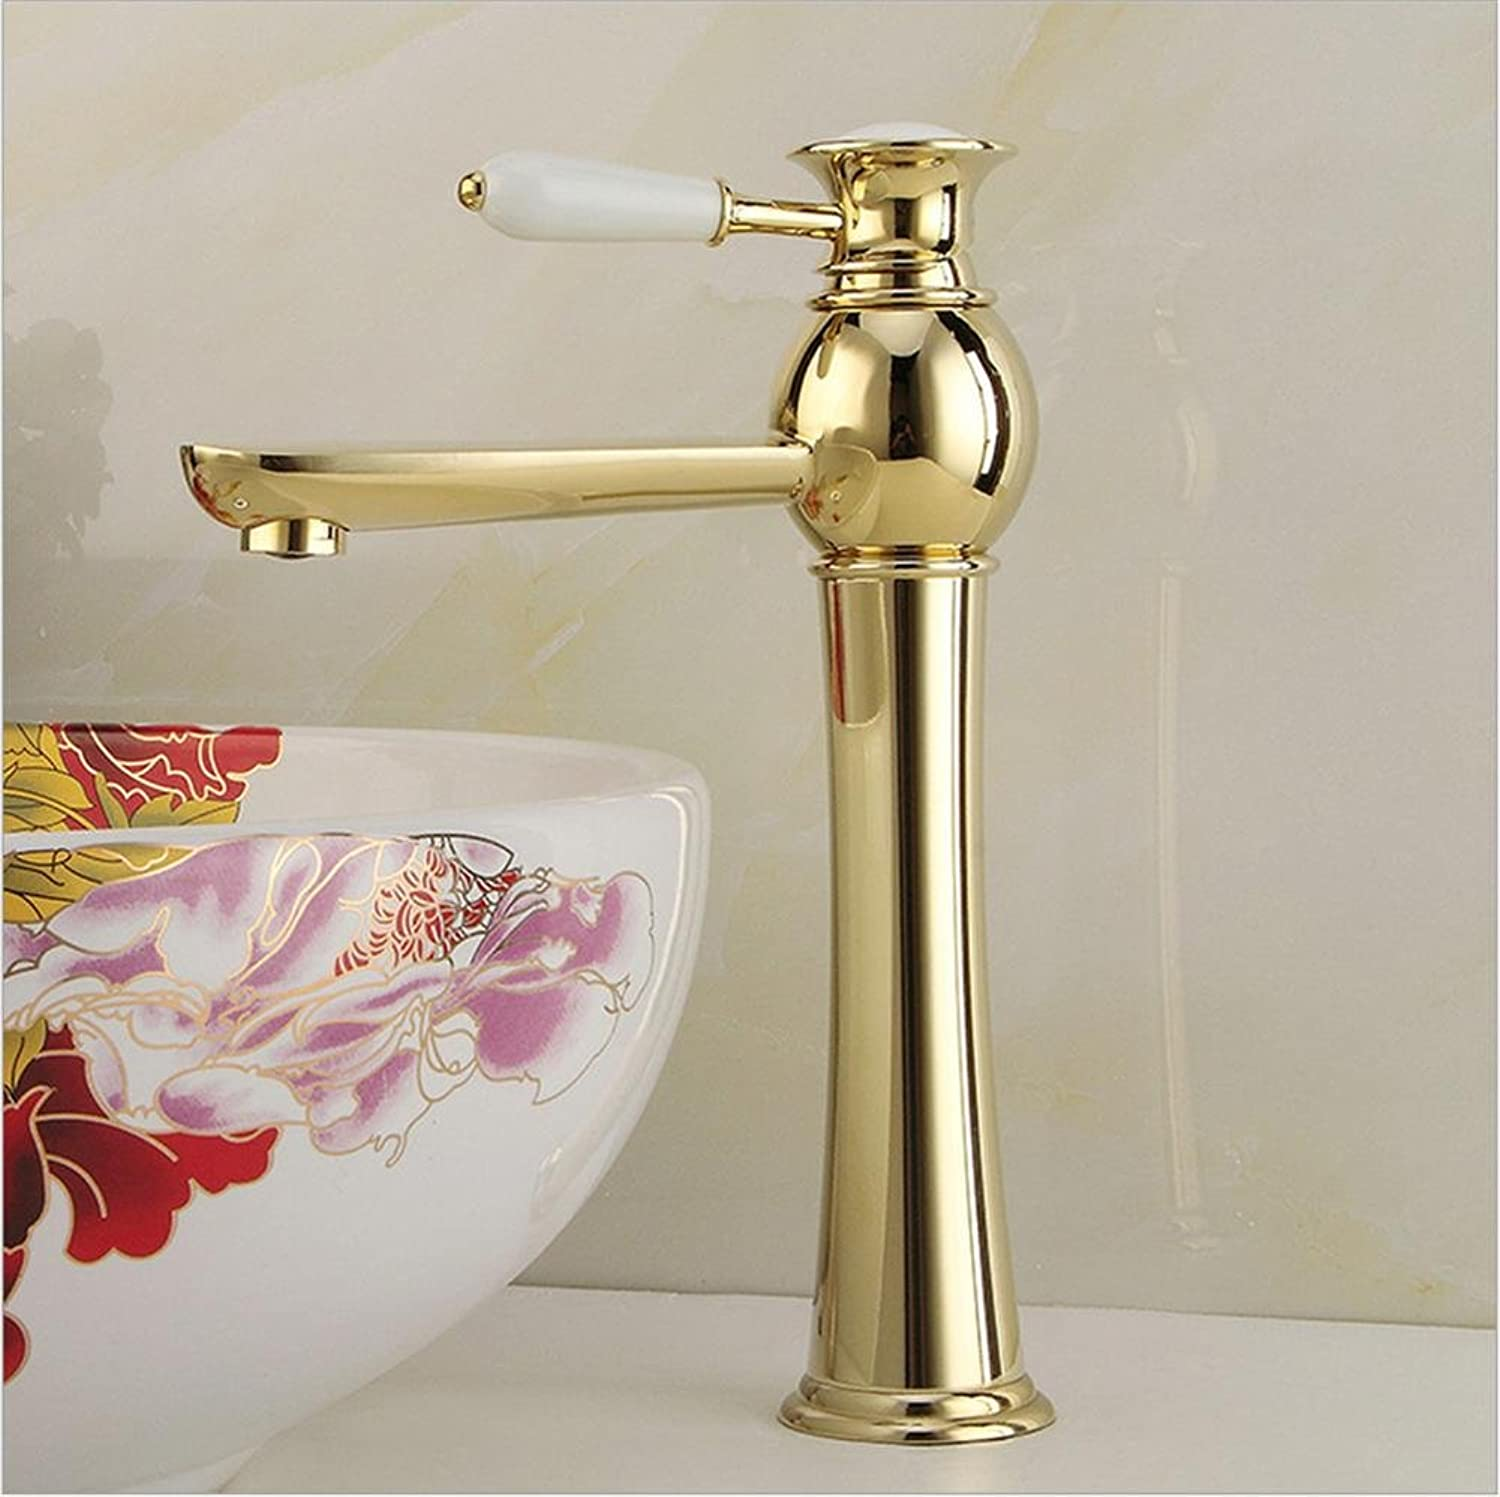 ZHIYUAN Fashion high-end ware Centerset Antique Hot and cold Single hole Faucets Bathroom washbasin gold-plated Mixing faucets